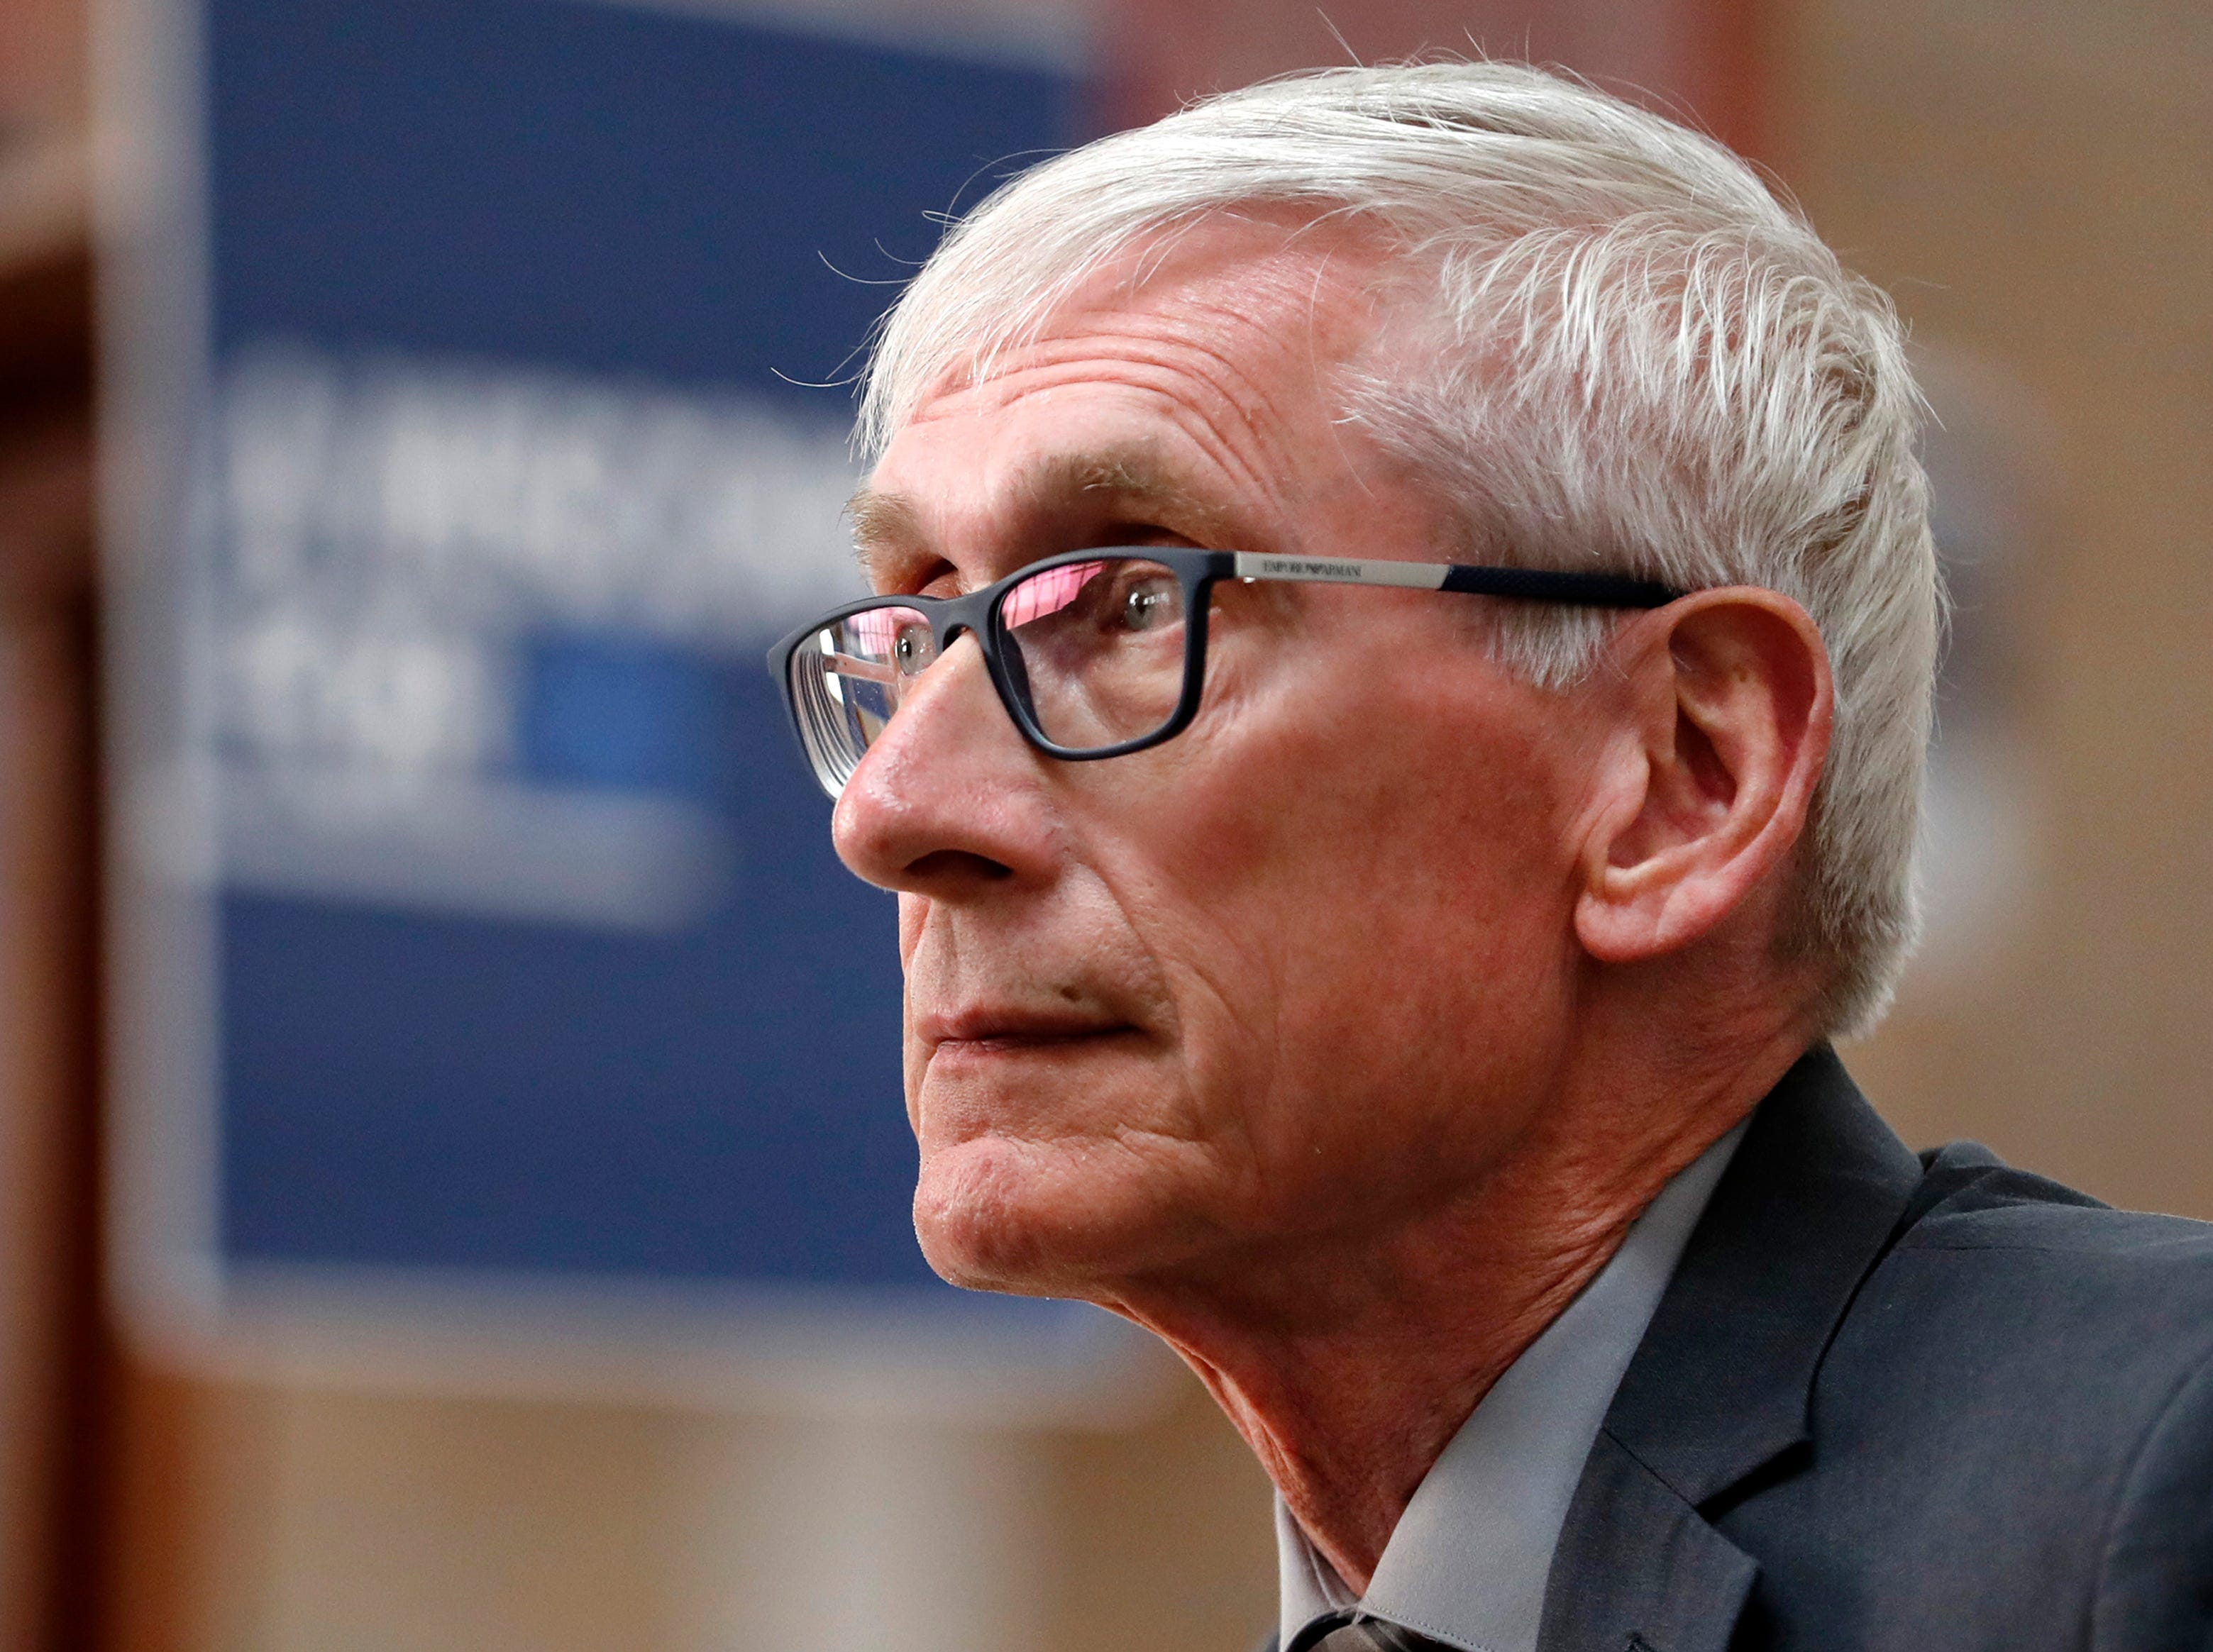 Gov. Tony Evers sits in on a group discussion about transportation during his stop at the Oshkosh Senior Center for The People's Budget Listening Session Tour Tuesday, April 23, 2019, in Oshkosh, Wis. 